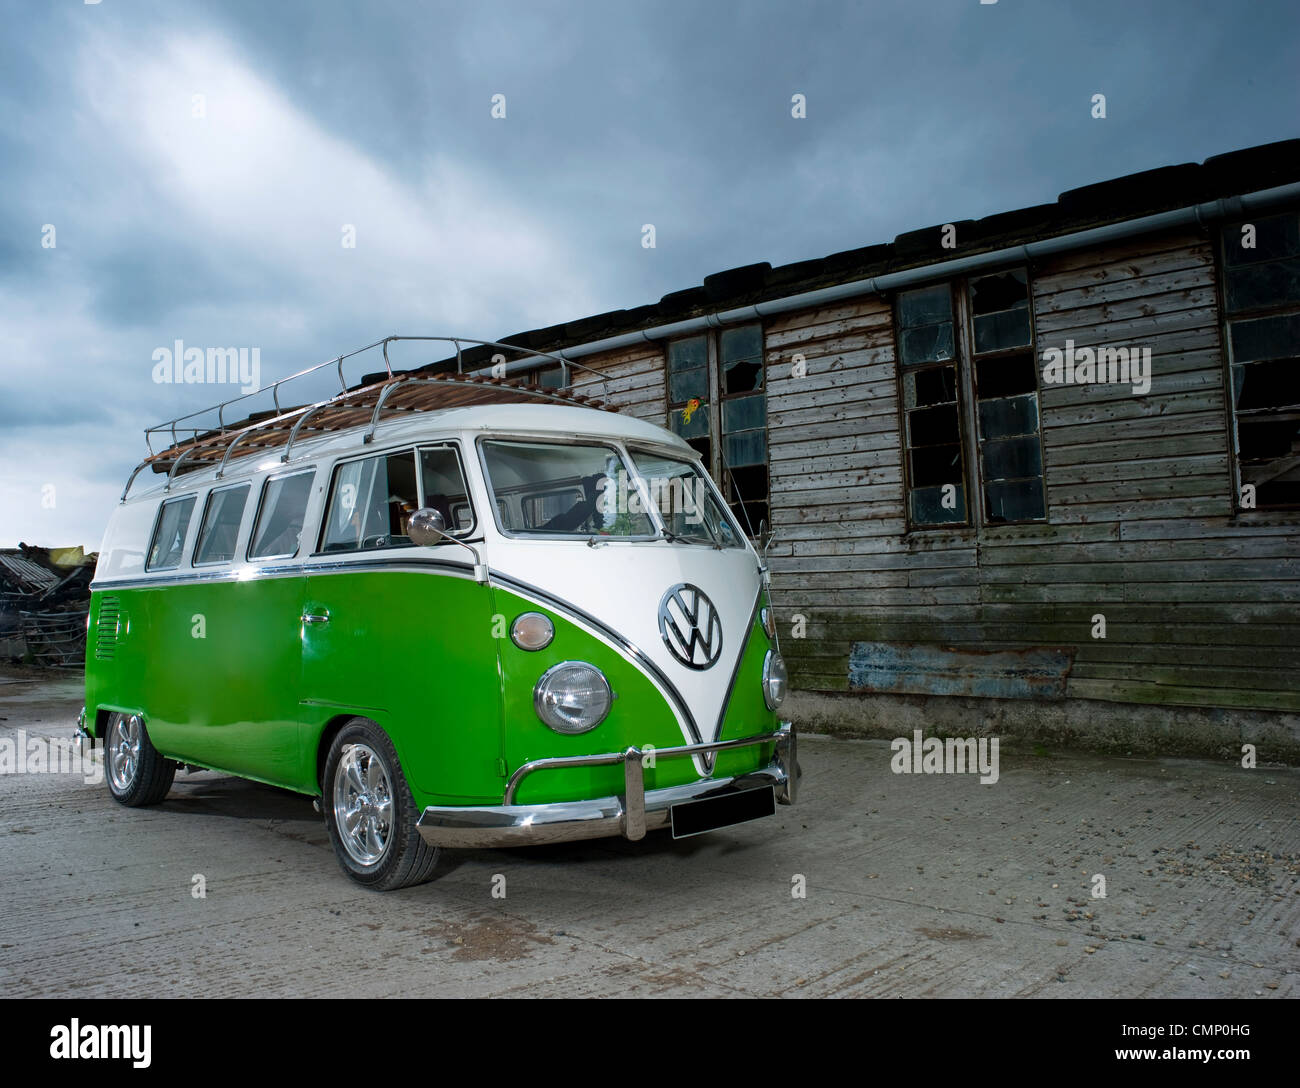 Green Vw Volkswagen Split Screen Camper Van Bus Lowered Modified Pimped Lime Hippie Hippy 1960s 1950s Aircooled Retro